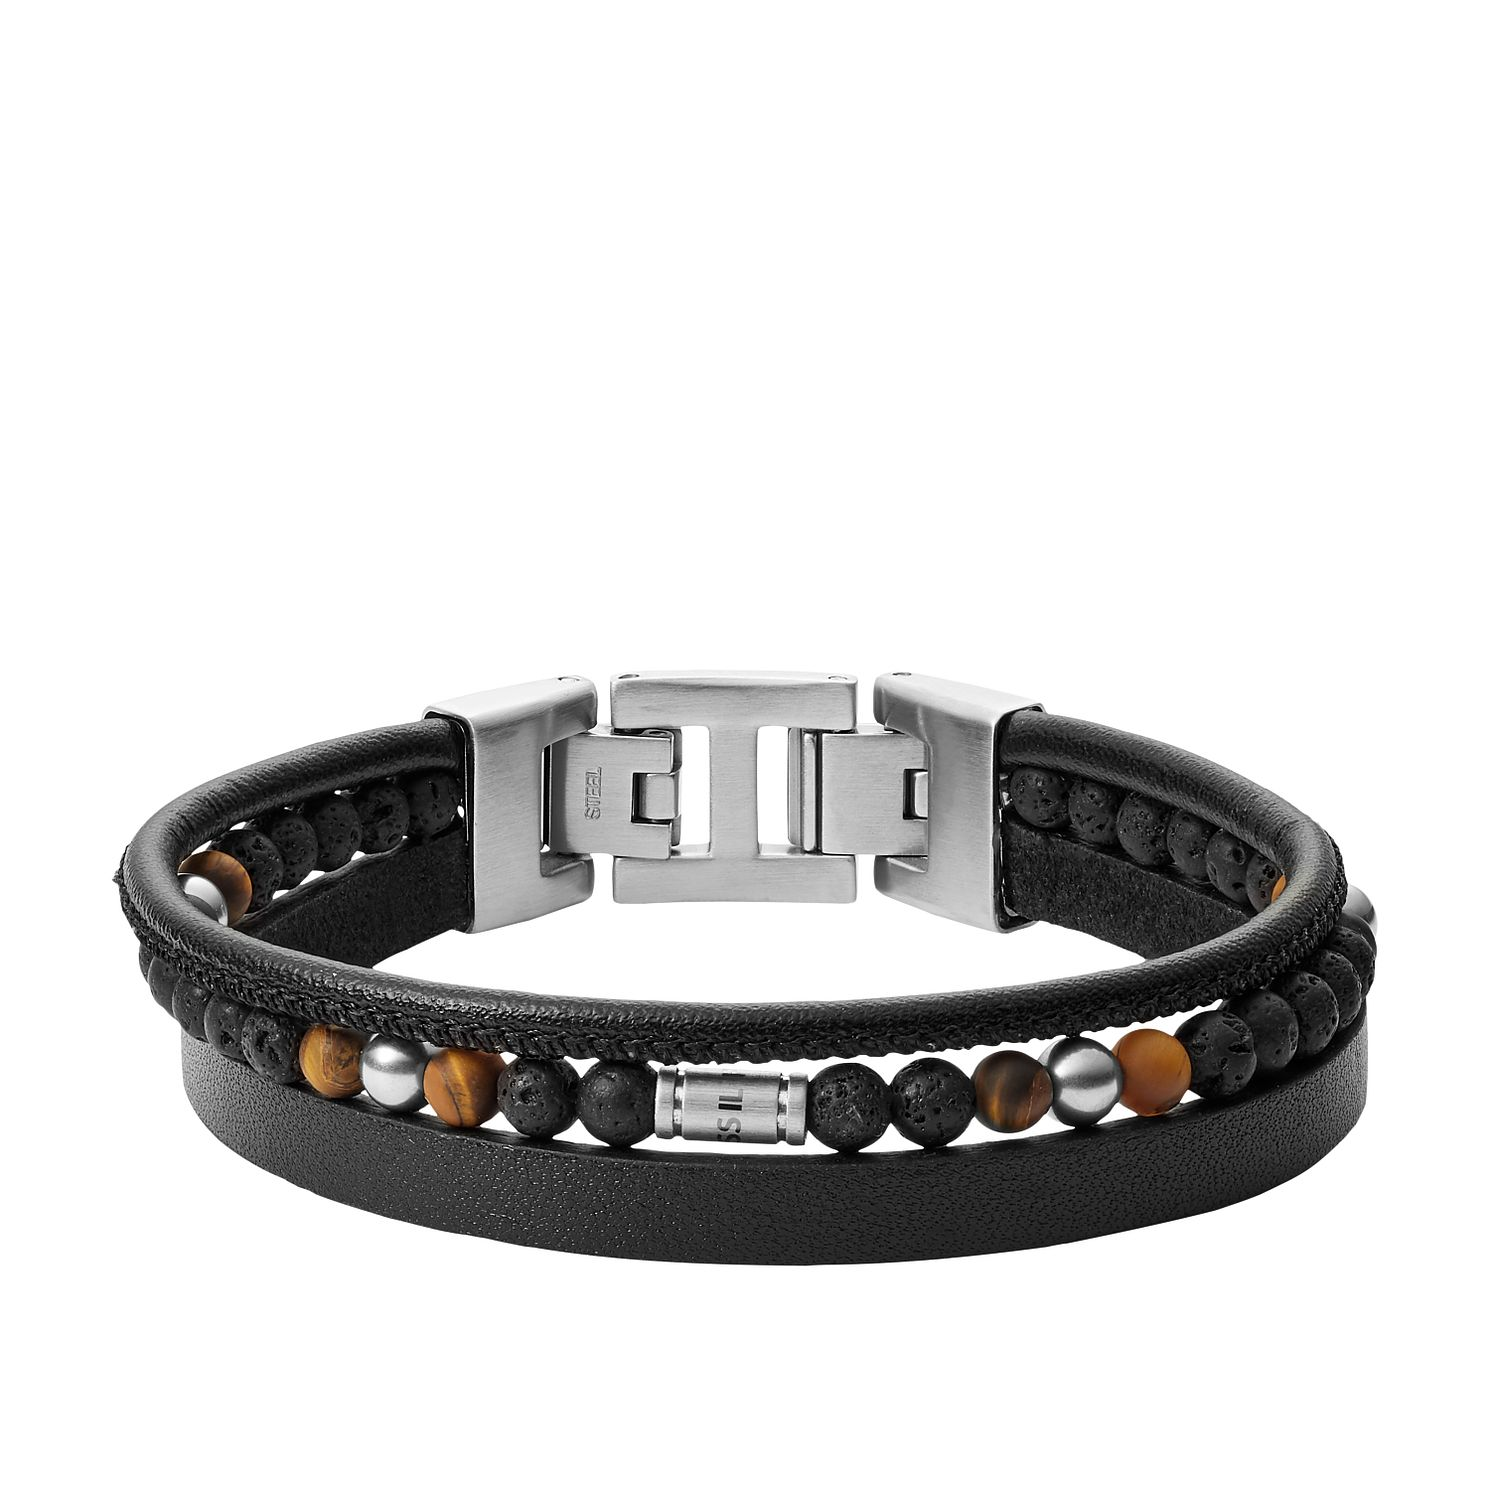 Fossil Men's 3 Strand Beaded Black Leather Bracelet - Product number 4140702